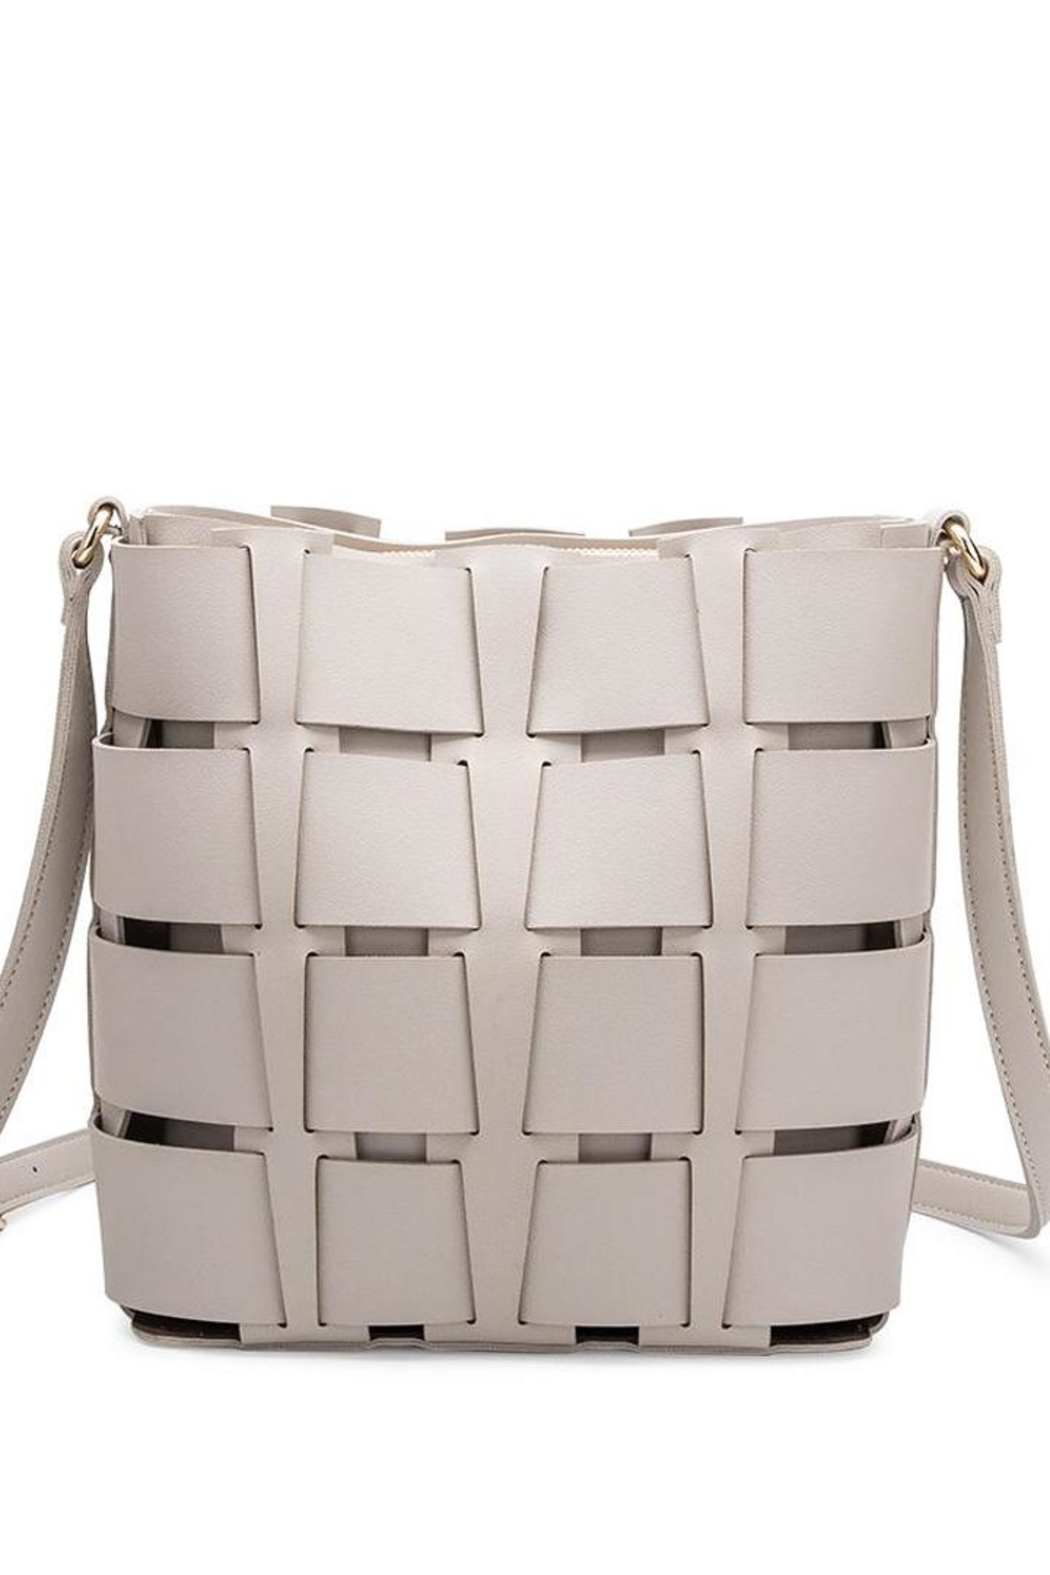 Melie Bianco Frances Bag - Side Cropped Image